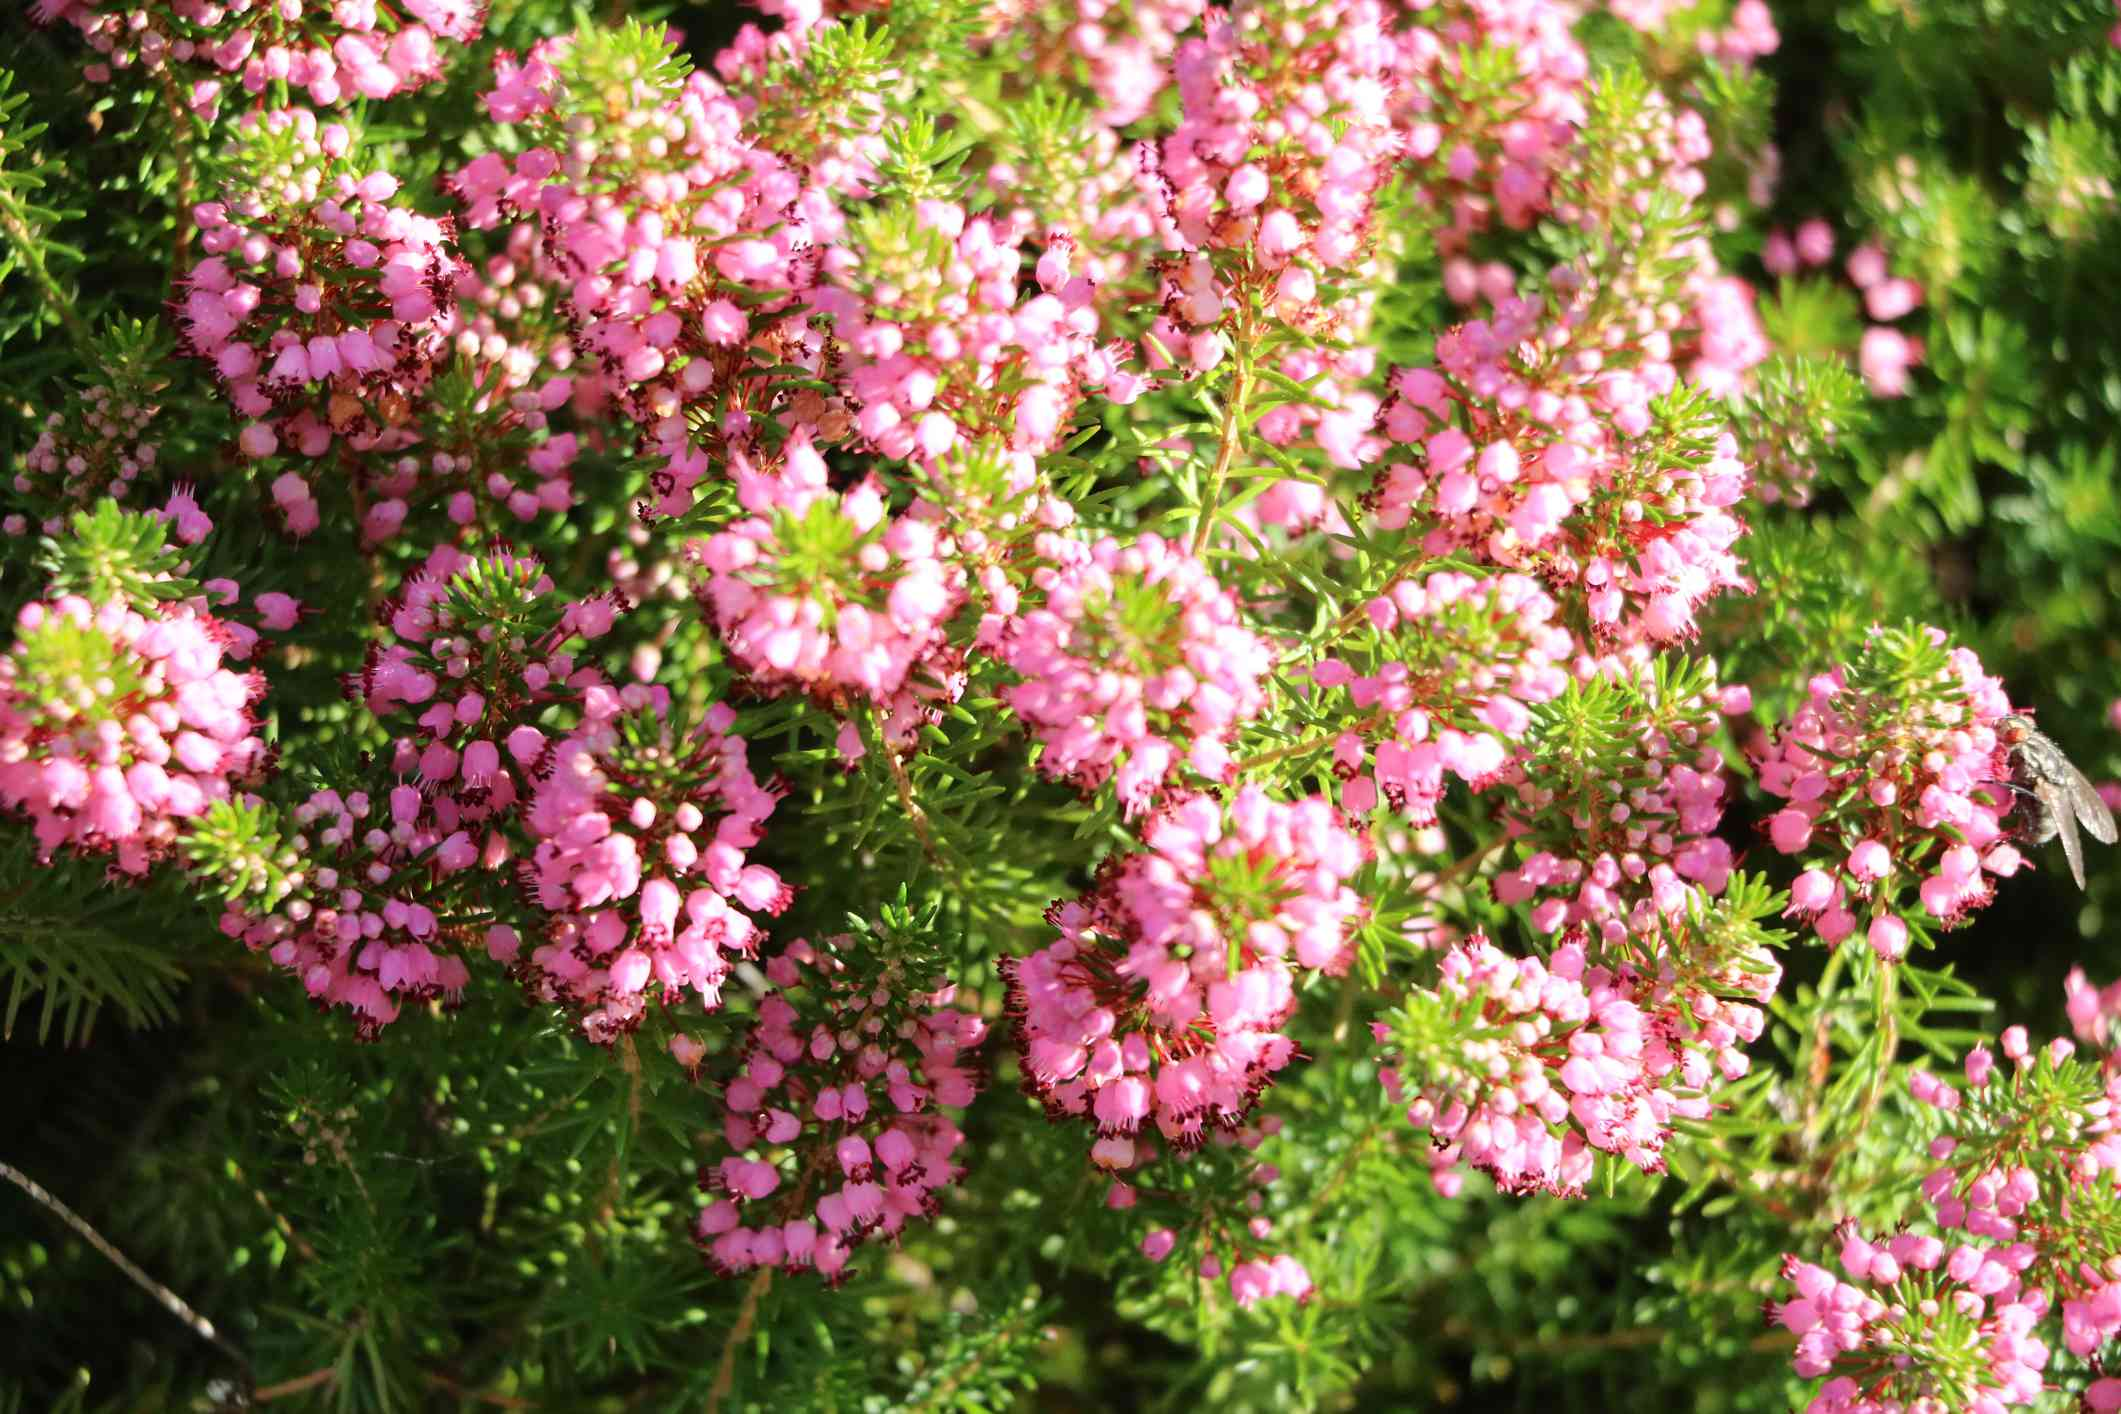 Winter heath with pink flowers